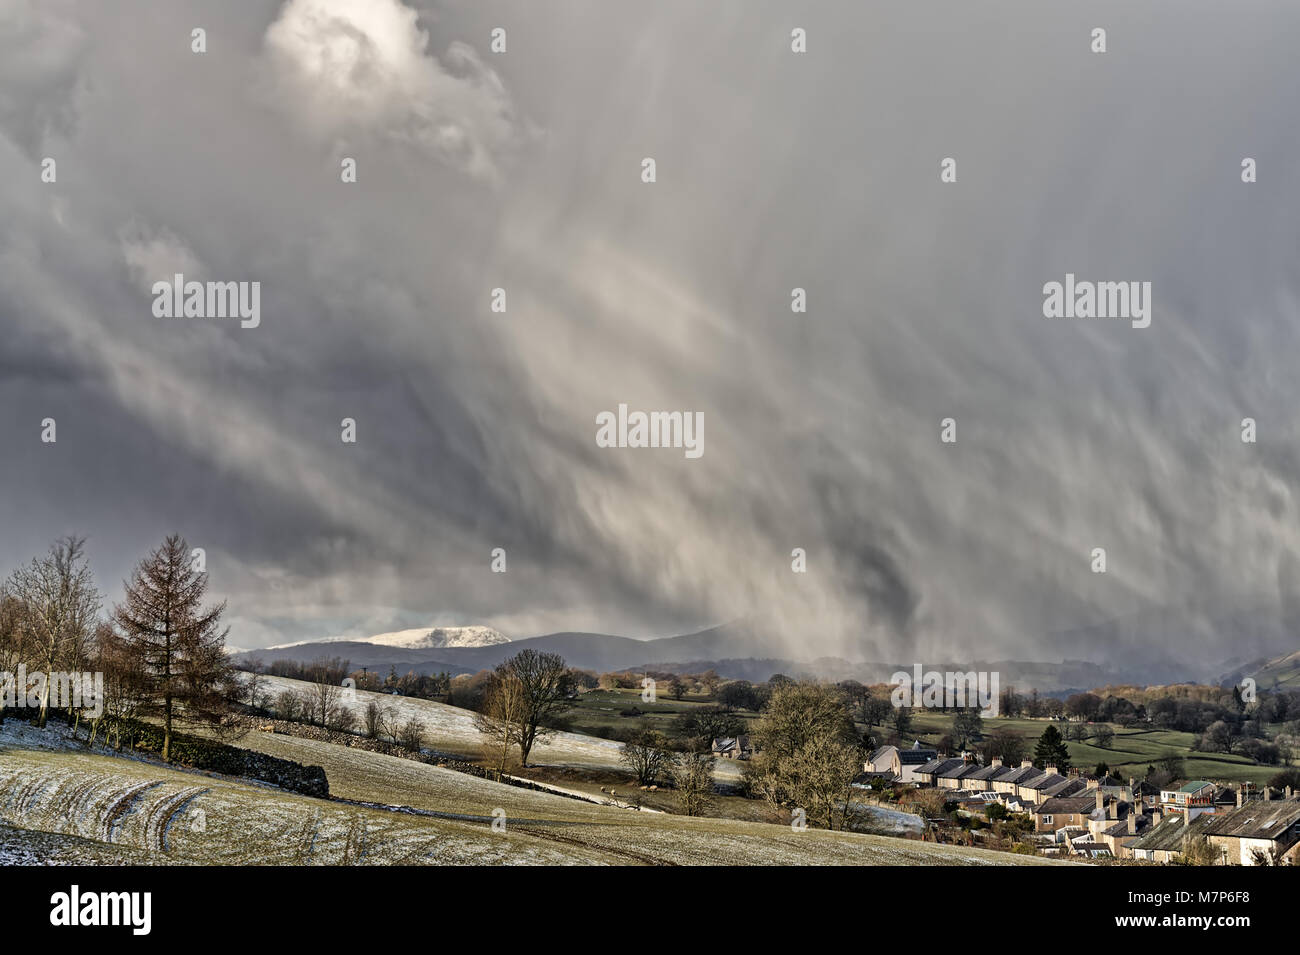 A snow shower falling in the North of England with a hilly backd - Stock Image